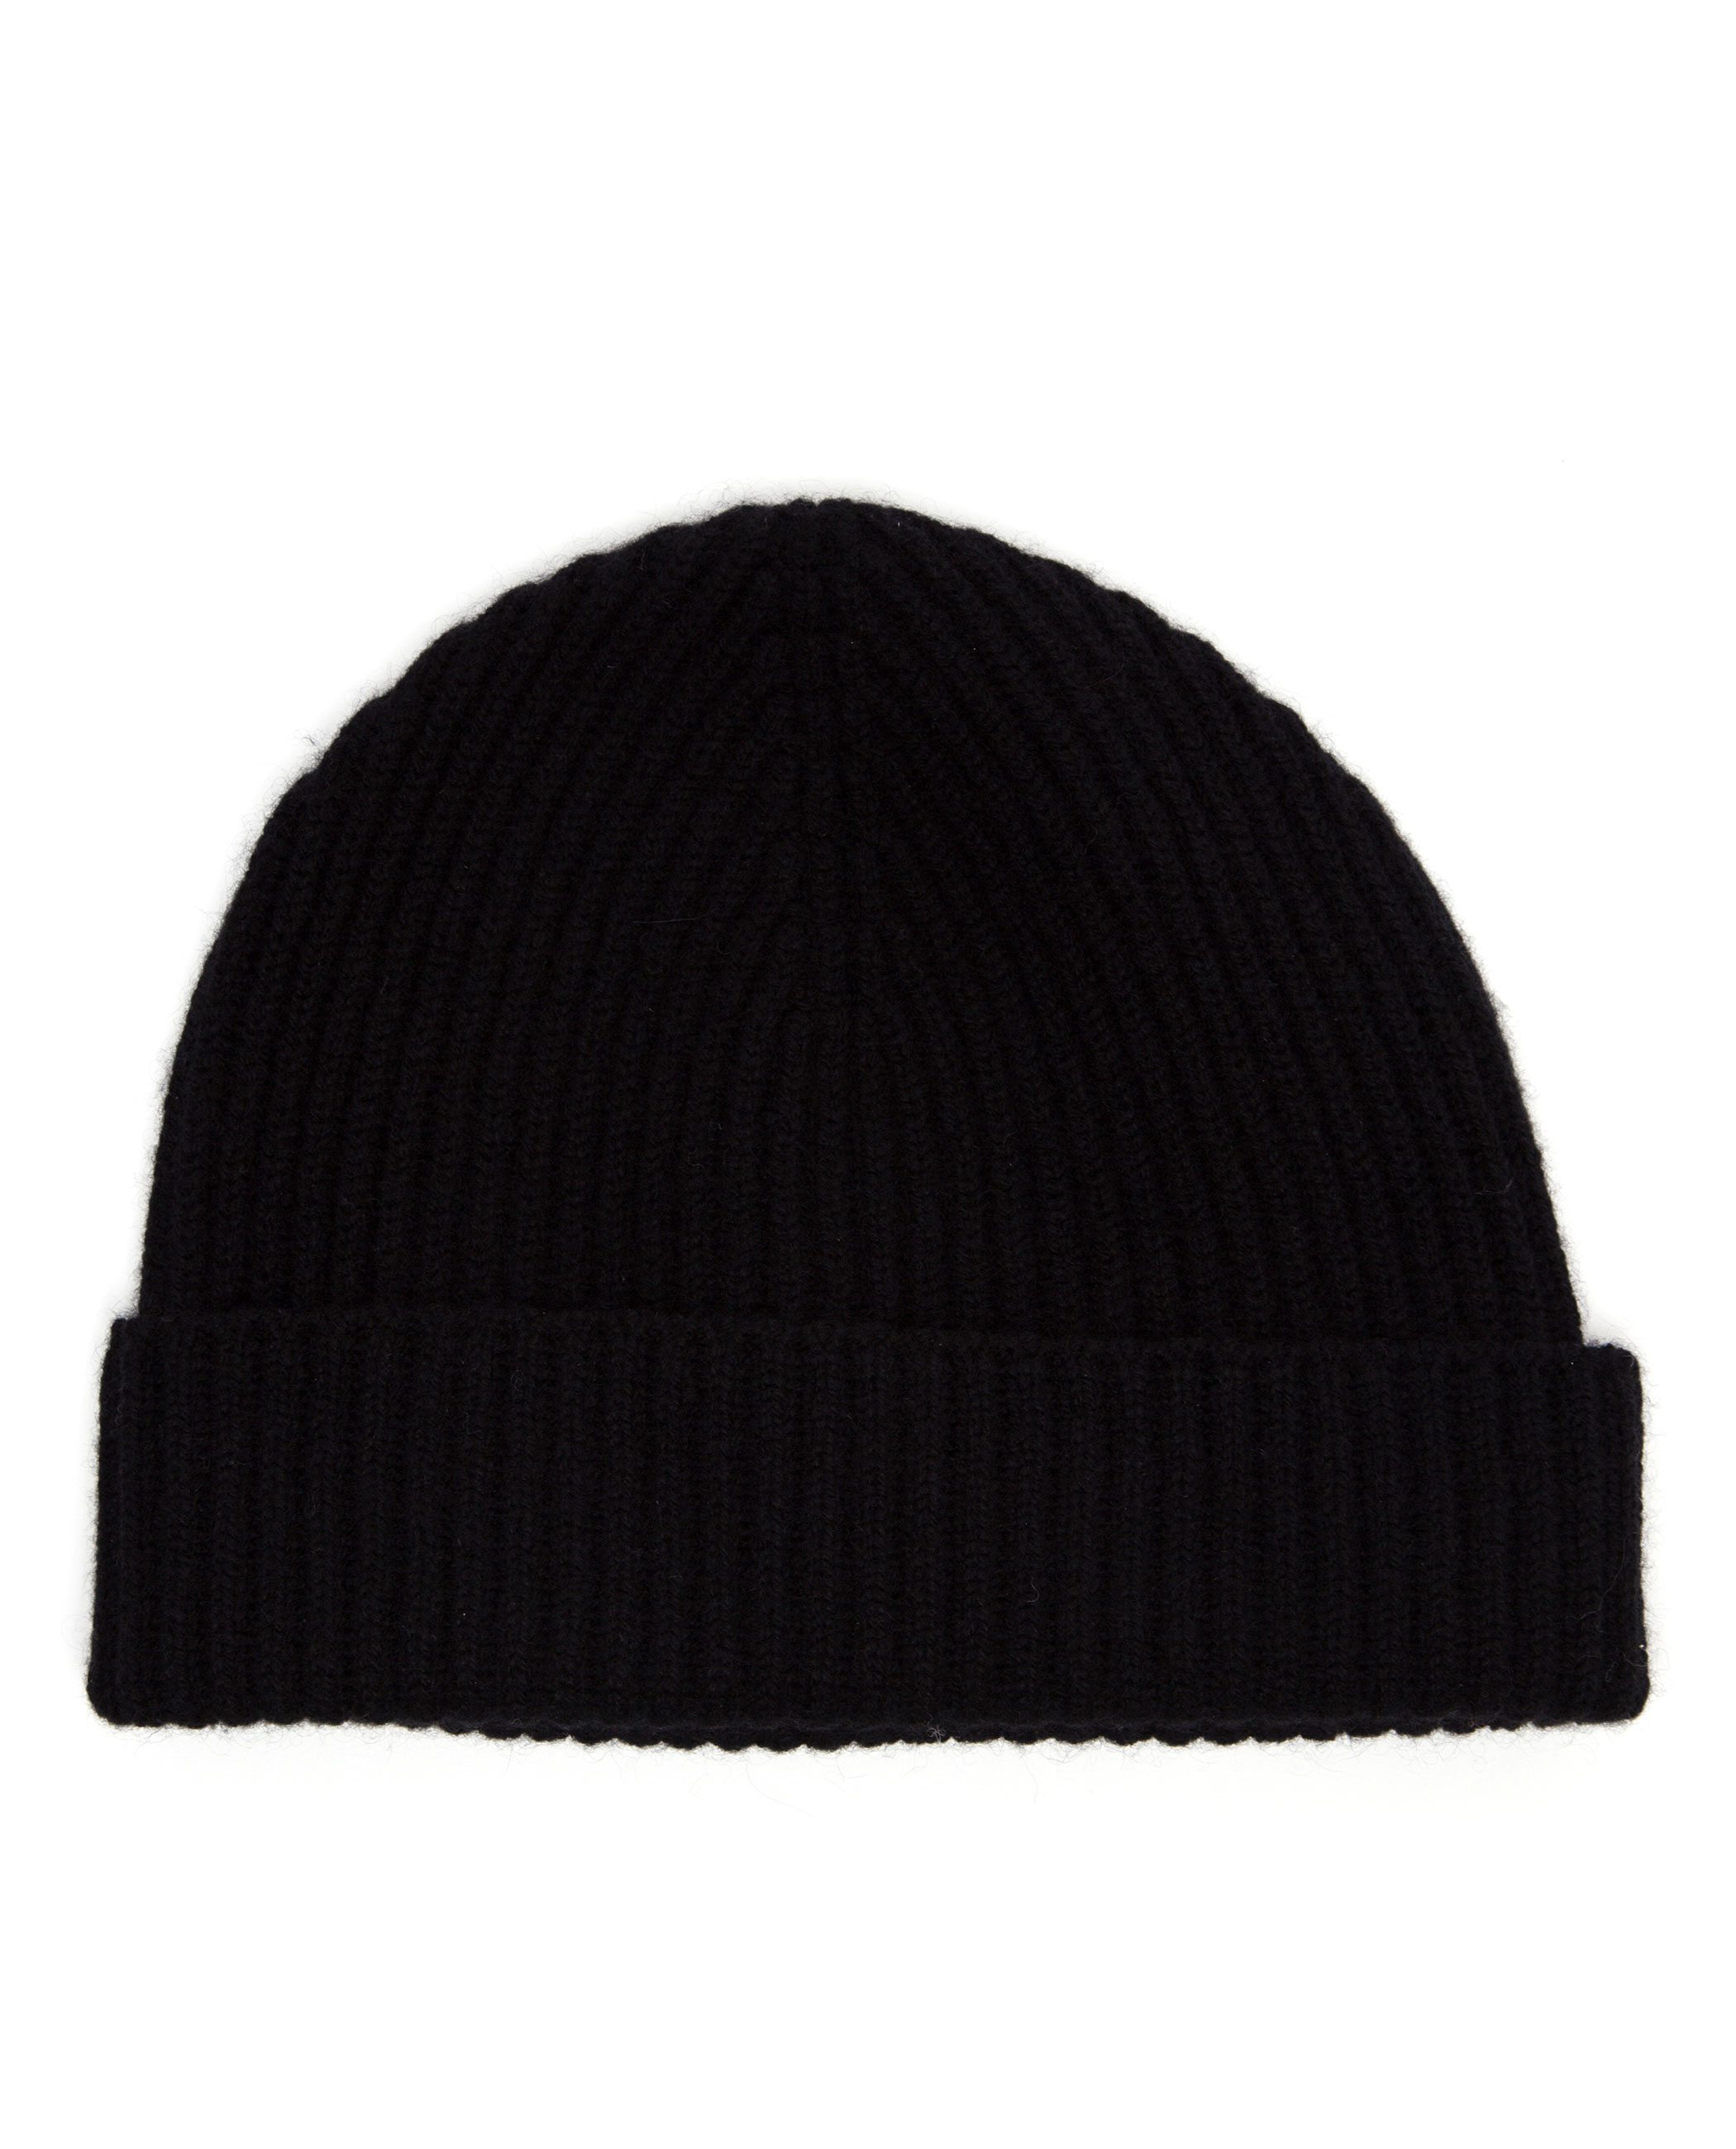 Men's Beanie Hats. invalid category id. Men's Beanie Hats. Showing 40 of 66 results that match your query. WITHMOONS Baseball Cap New York City US Flag Patch Simple Plain Ball Cap For Men Women Hat AC (Black) Add To Cart. There is a problem adding to cart. Please try again.